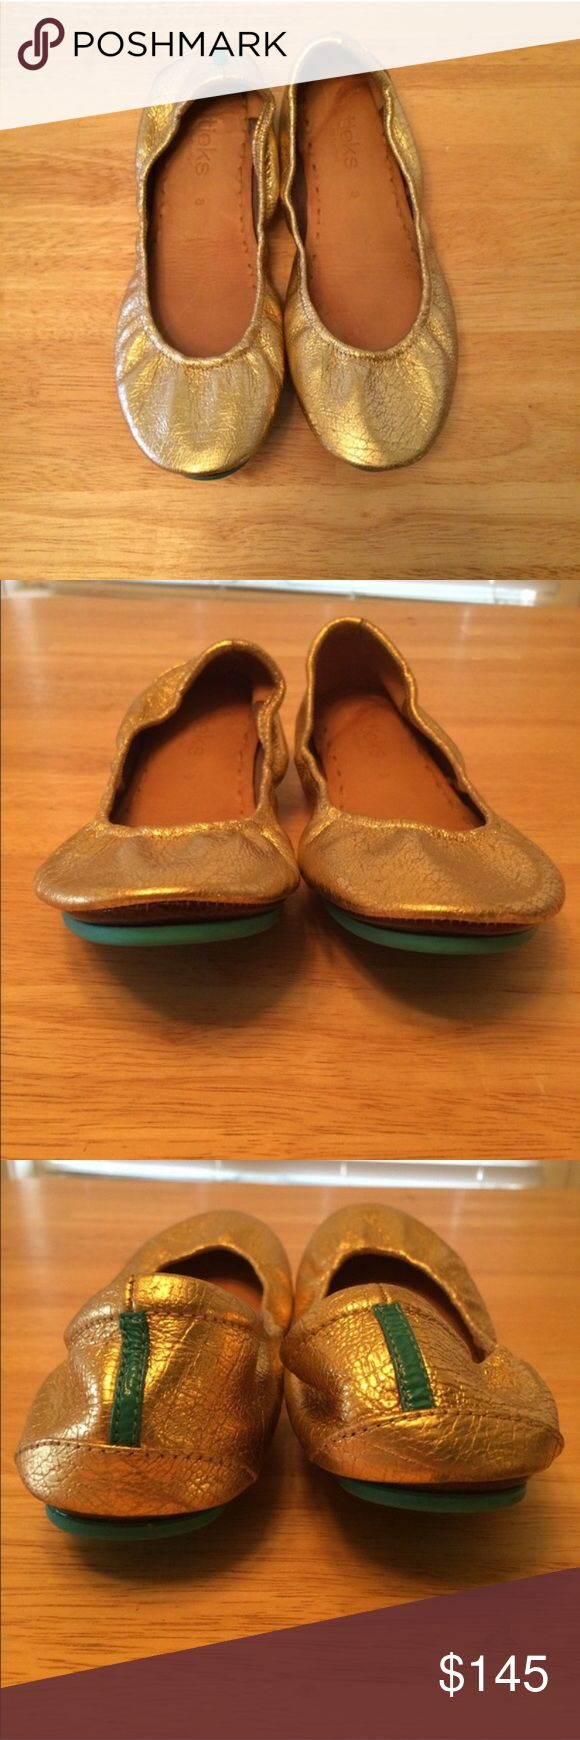 Golden Glitz Tieks Size 8 Golden Glitz size 8 Tieks. Bought used & worn once for my wedding. Up to trade for Black or Brown size 8 or For sale. Tieks Shoes Flats & Loafers